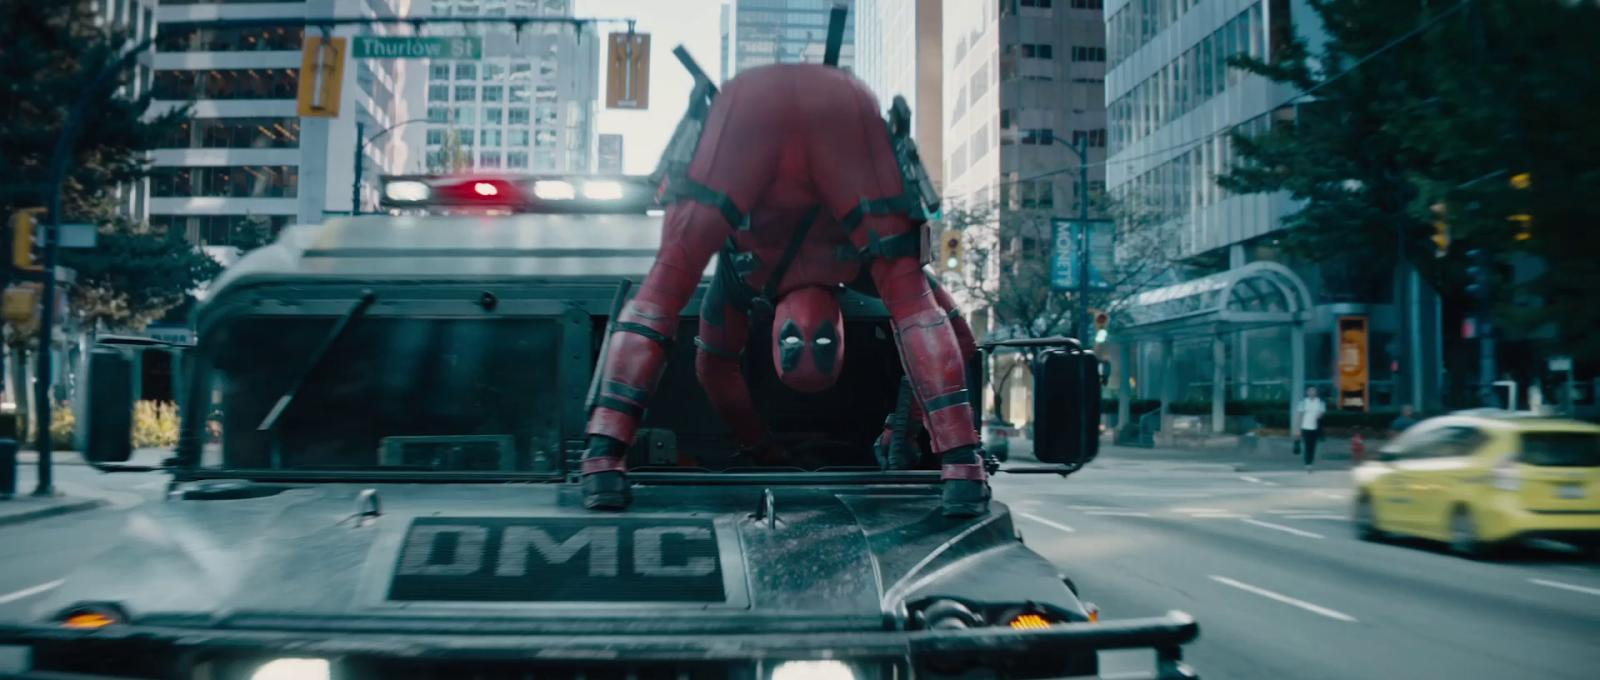 Deadpool 2 recupera liderança do box office mundial